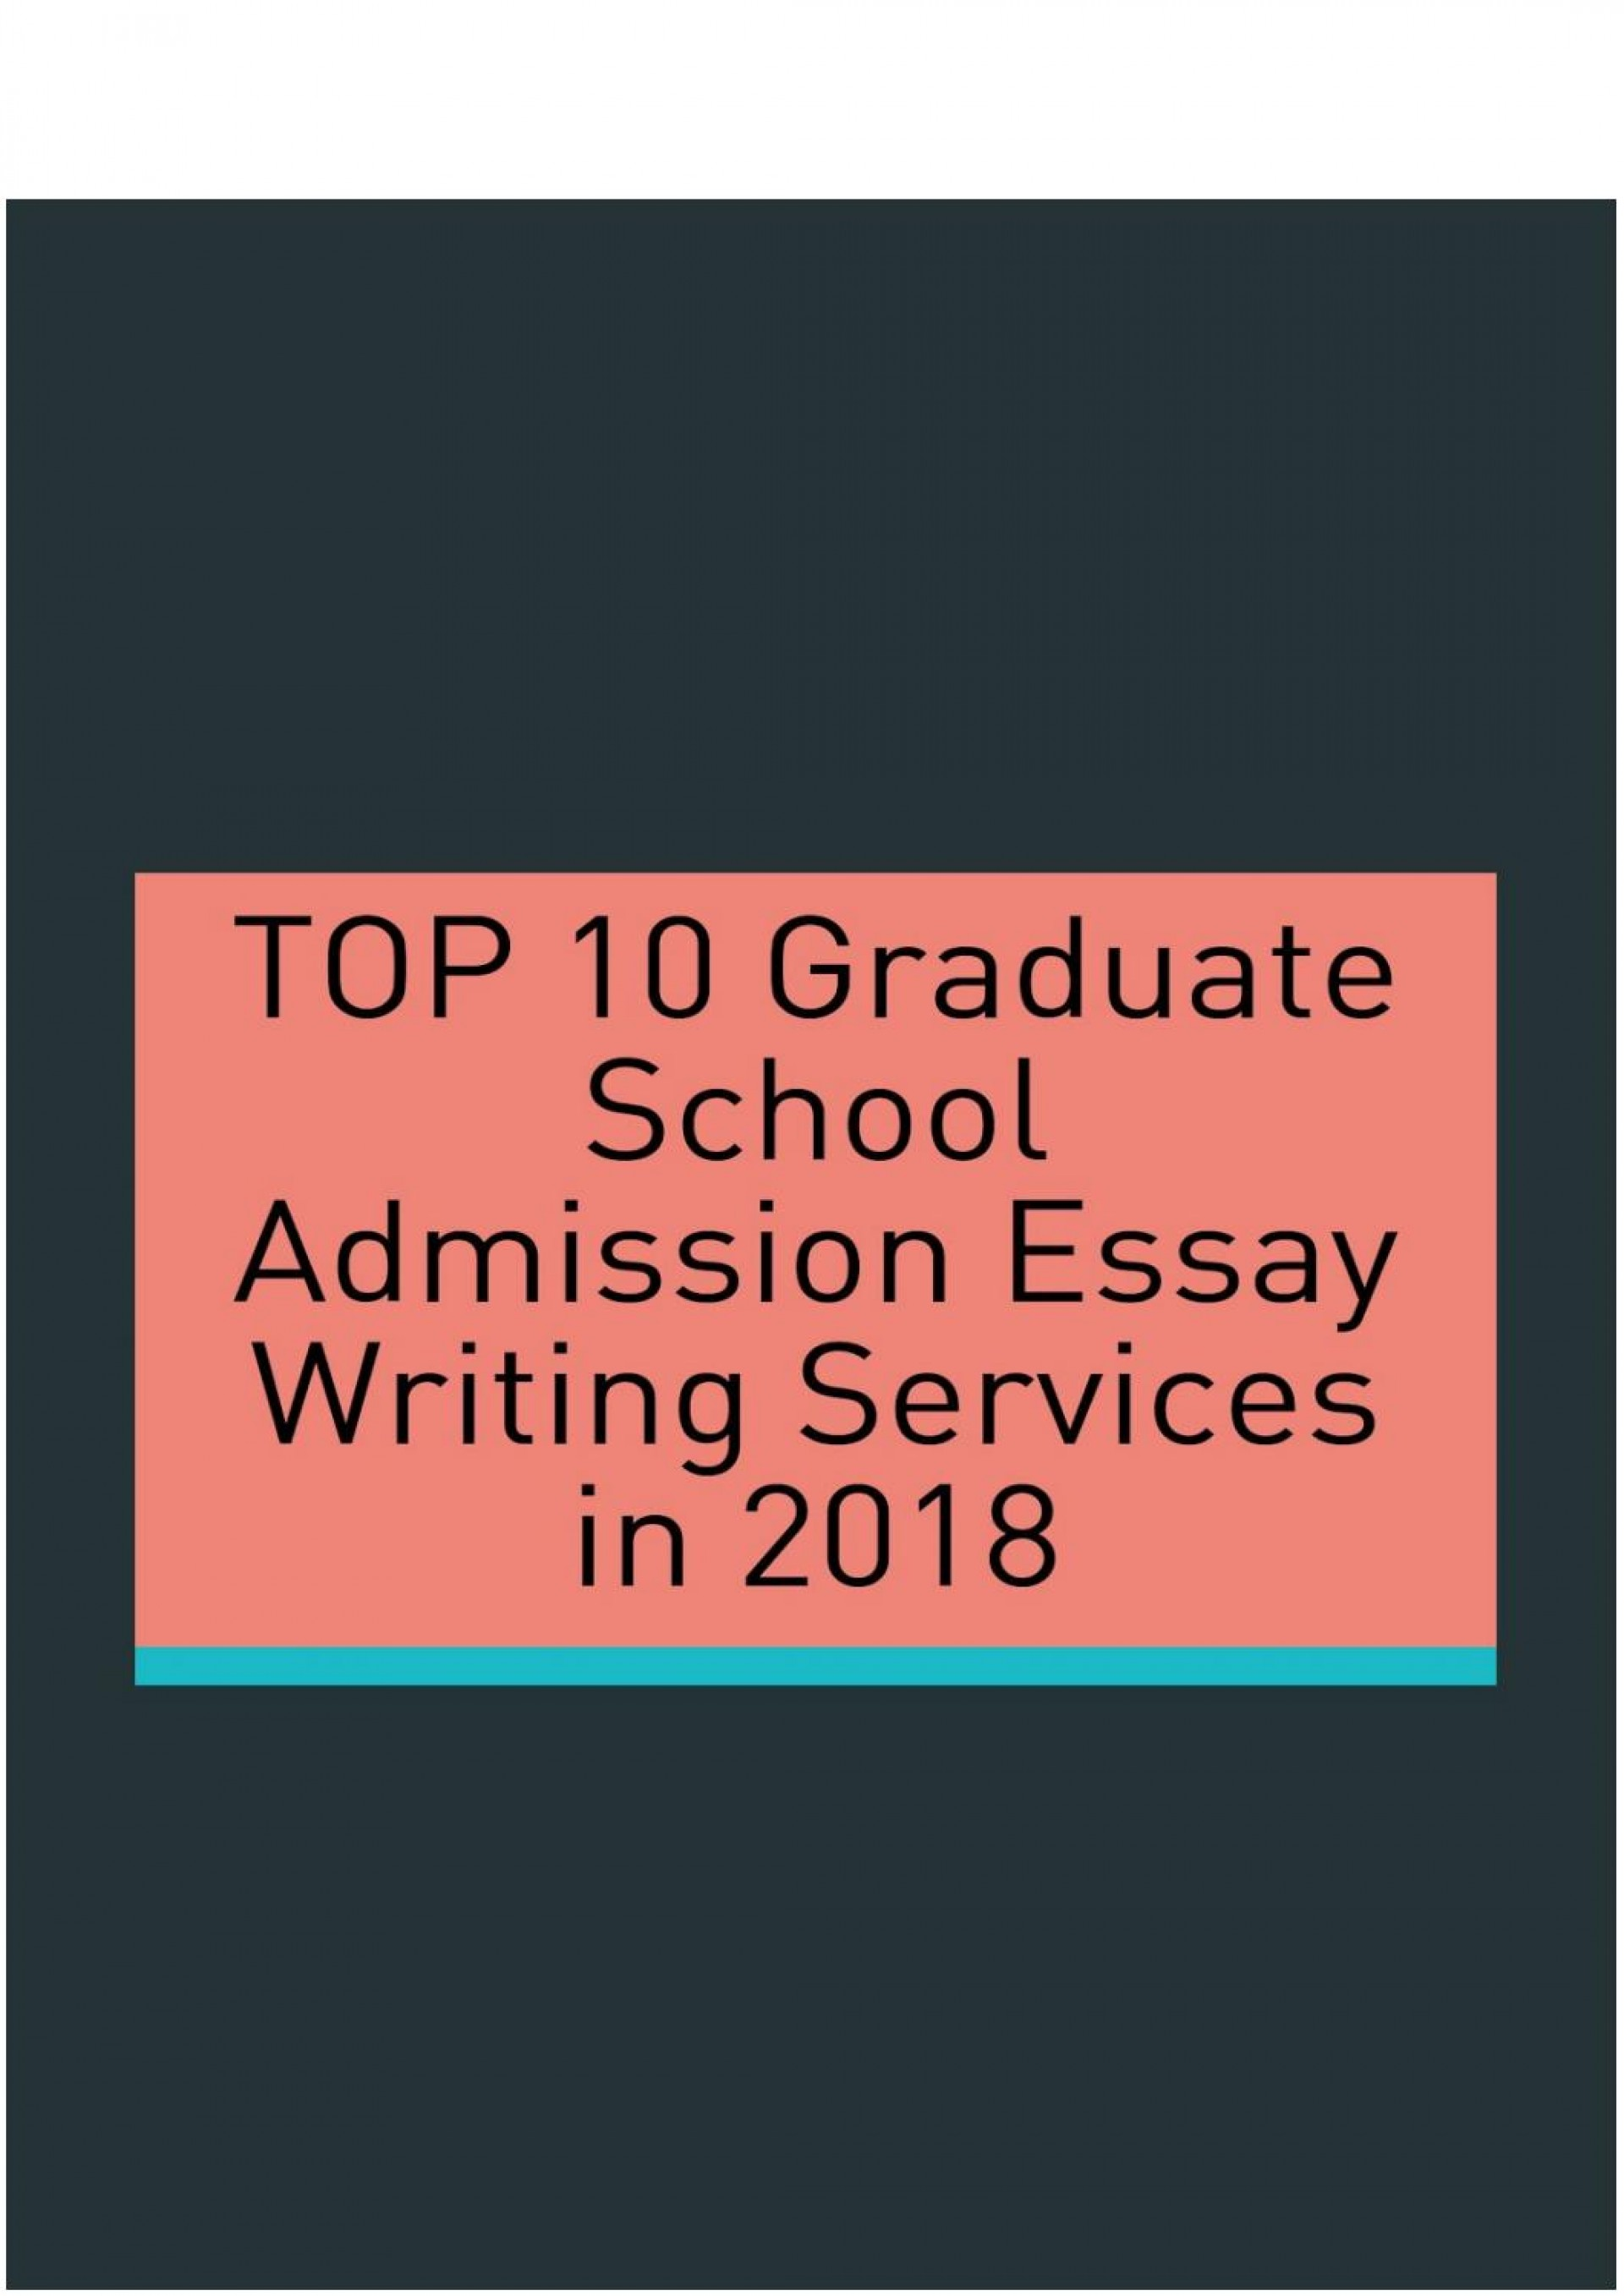 025 Custom Research Paper Writing Services Page 1 Dreaded Best Academic Service Thesis 1920